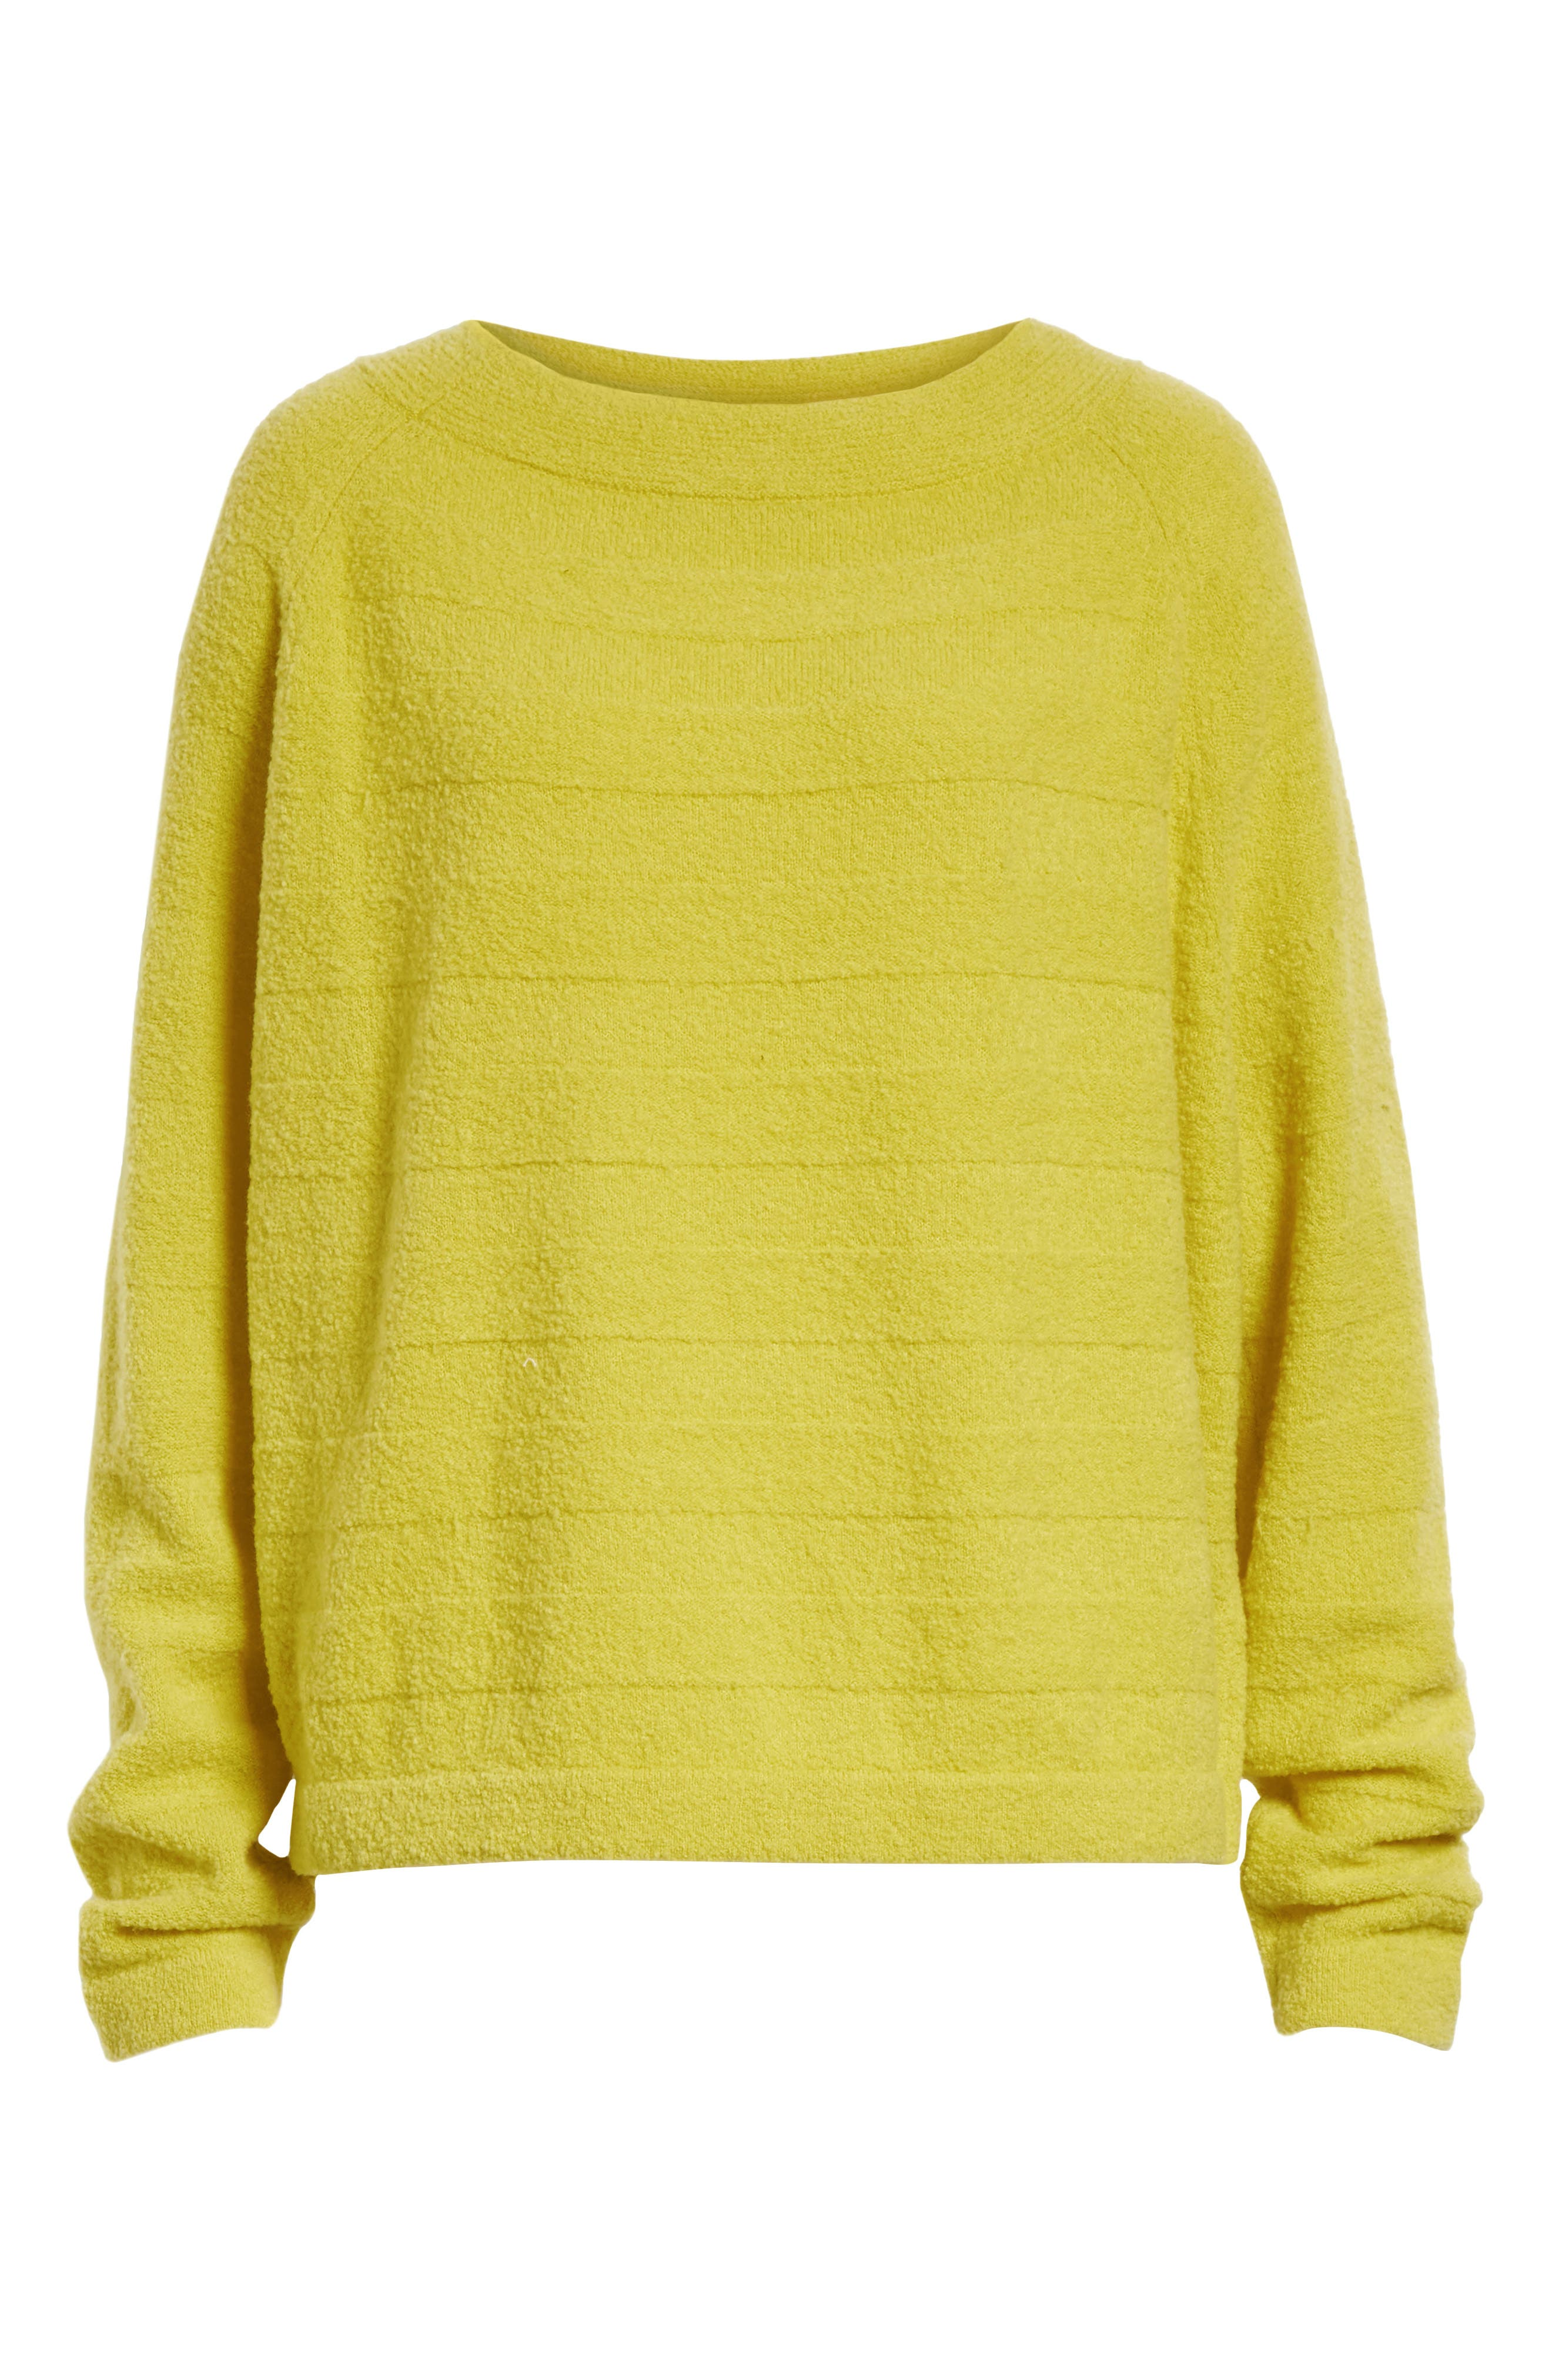 Merino Wool Blend Knit Sweater,                             Alternate thumbnail 6, color,                             750